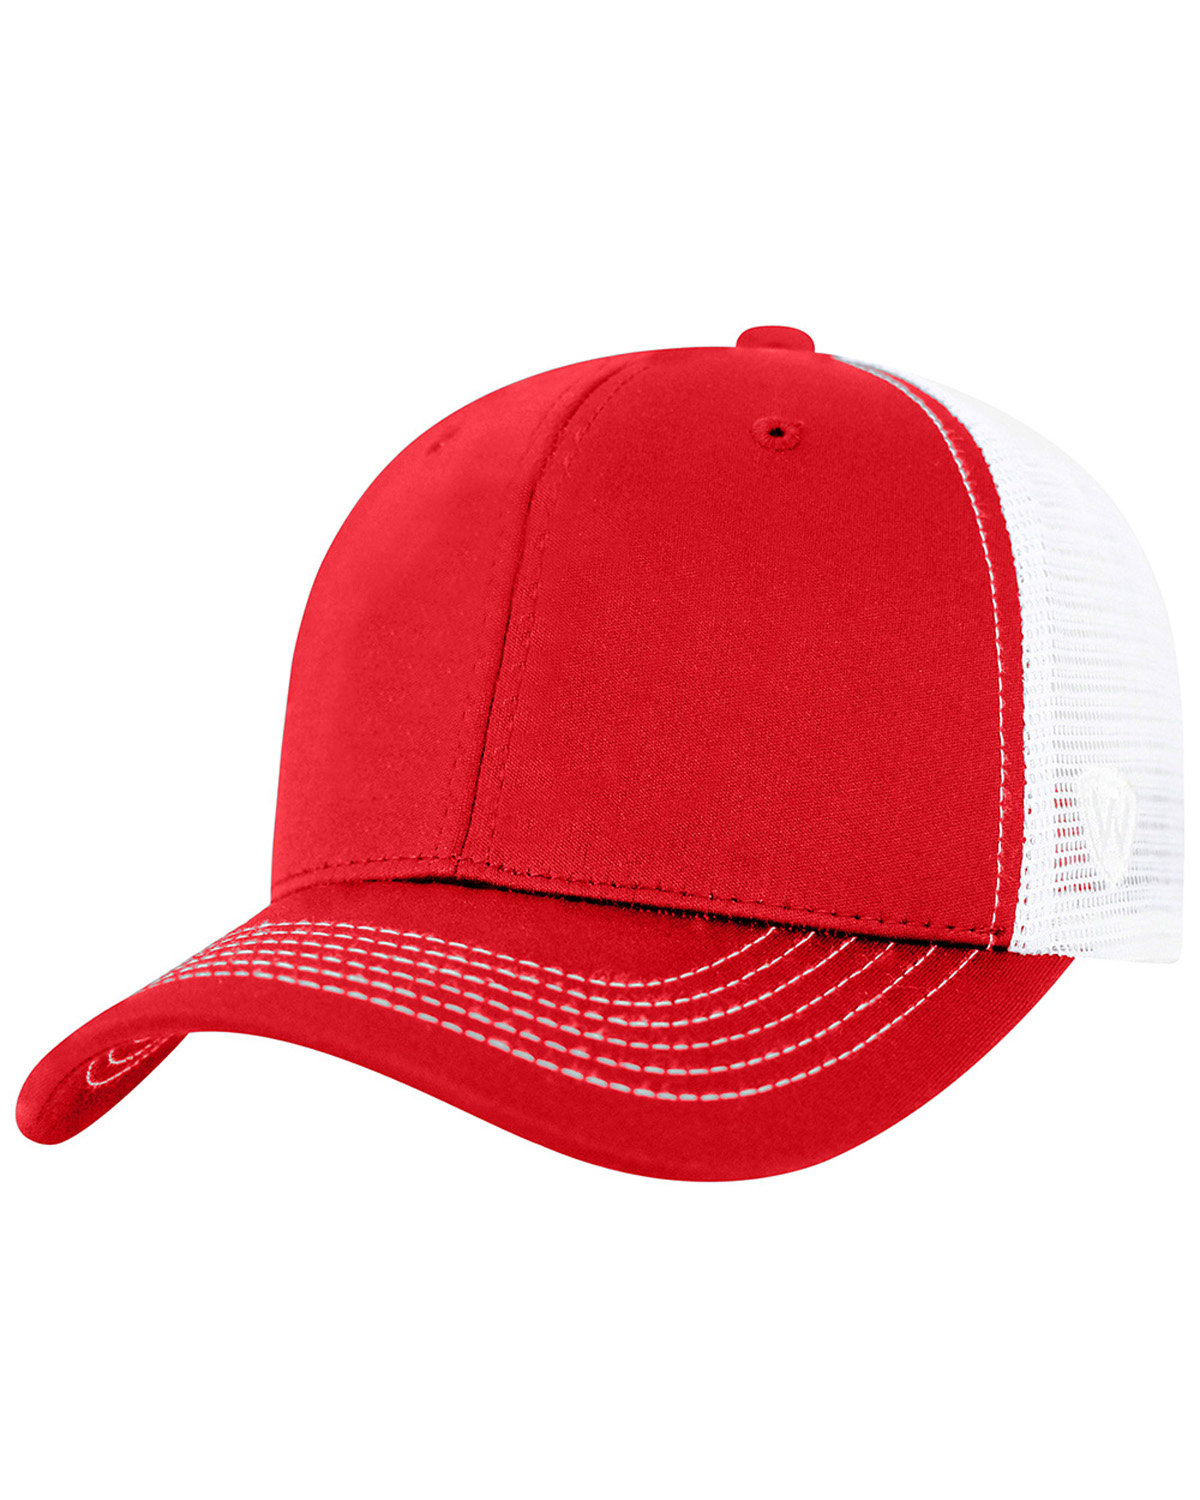 Top Of The World Adult Ranger Cap RED/ WHITE